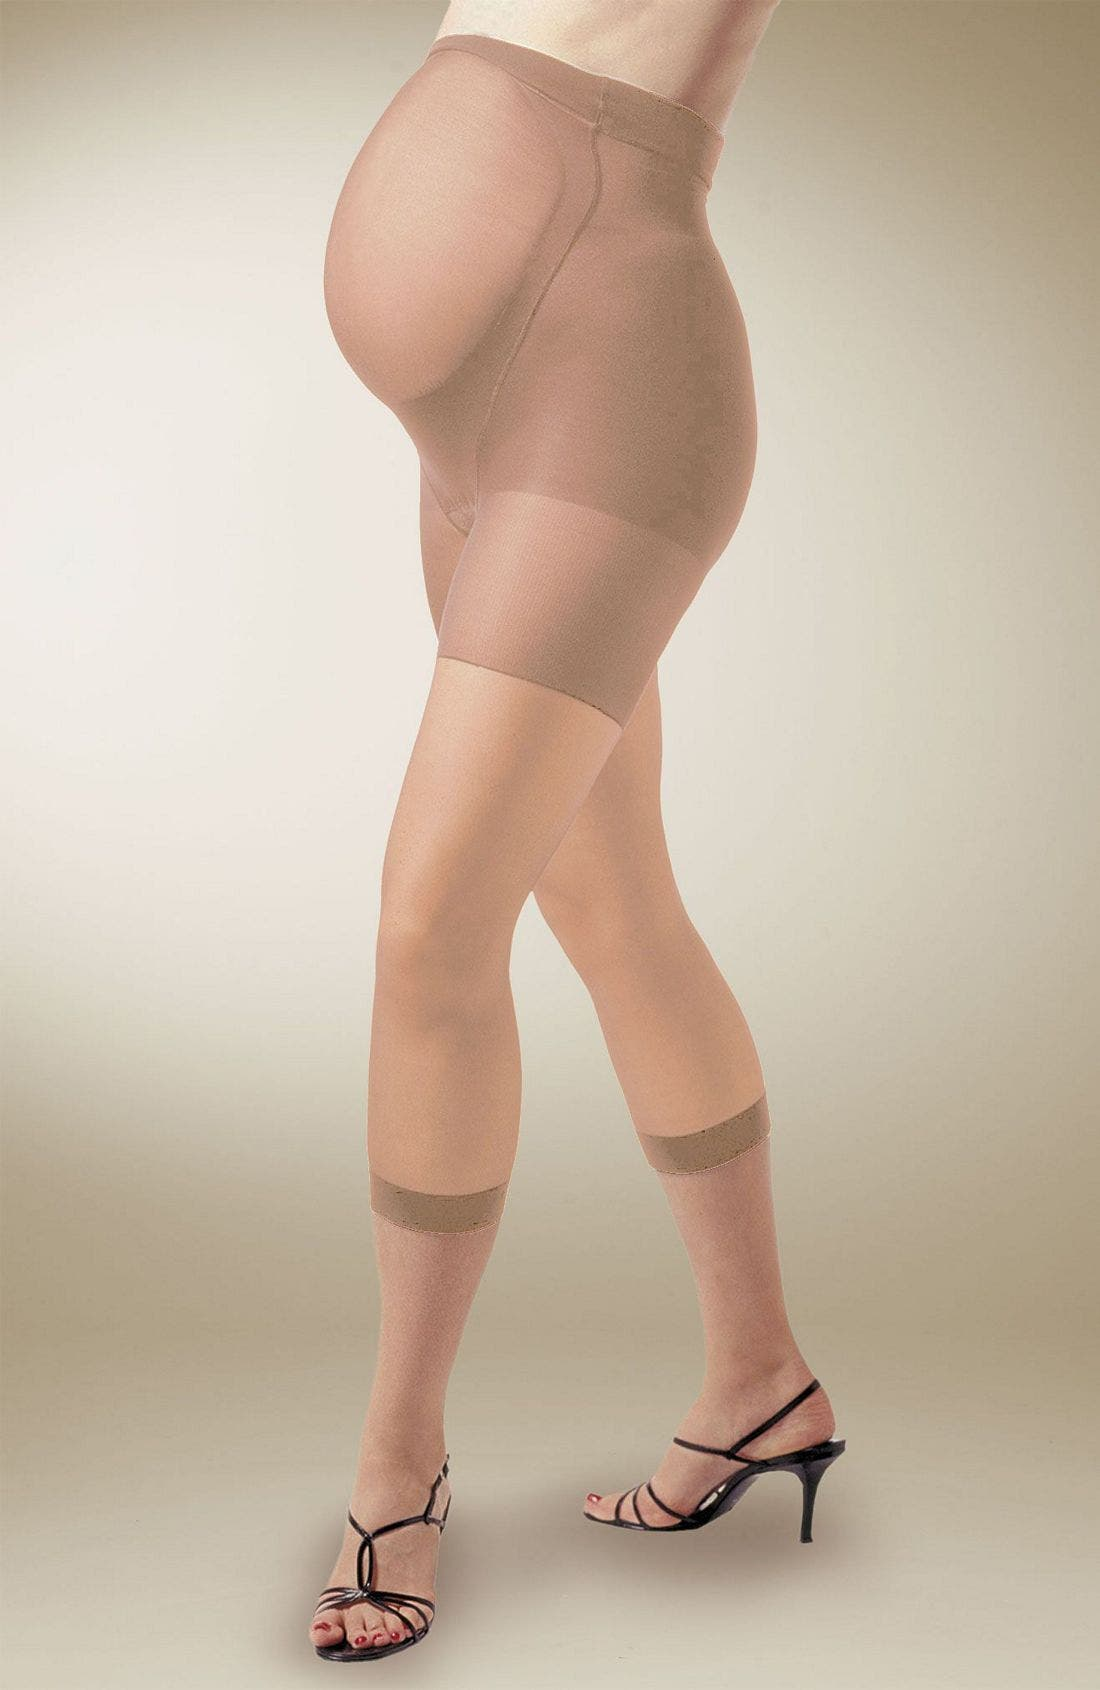 Alternate Image 1 Selected - SPANX® 'Mama' Footless Maternity Pantyhose